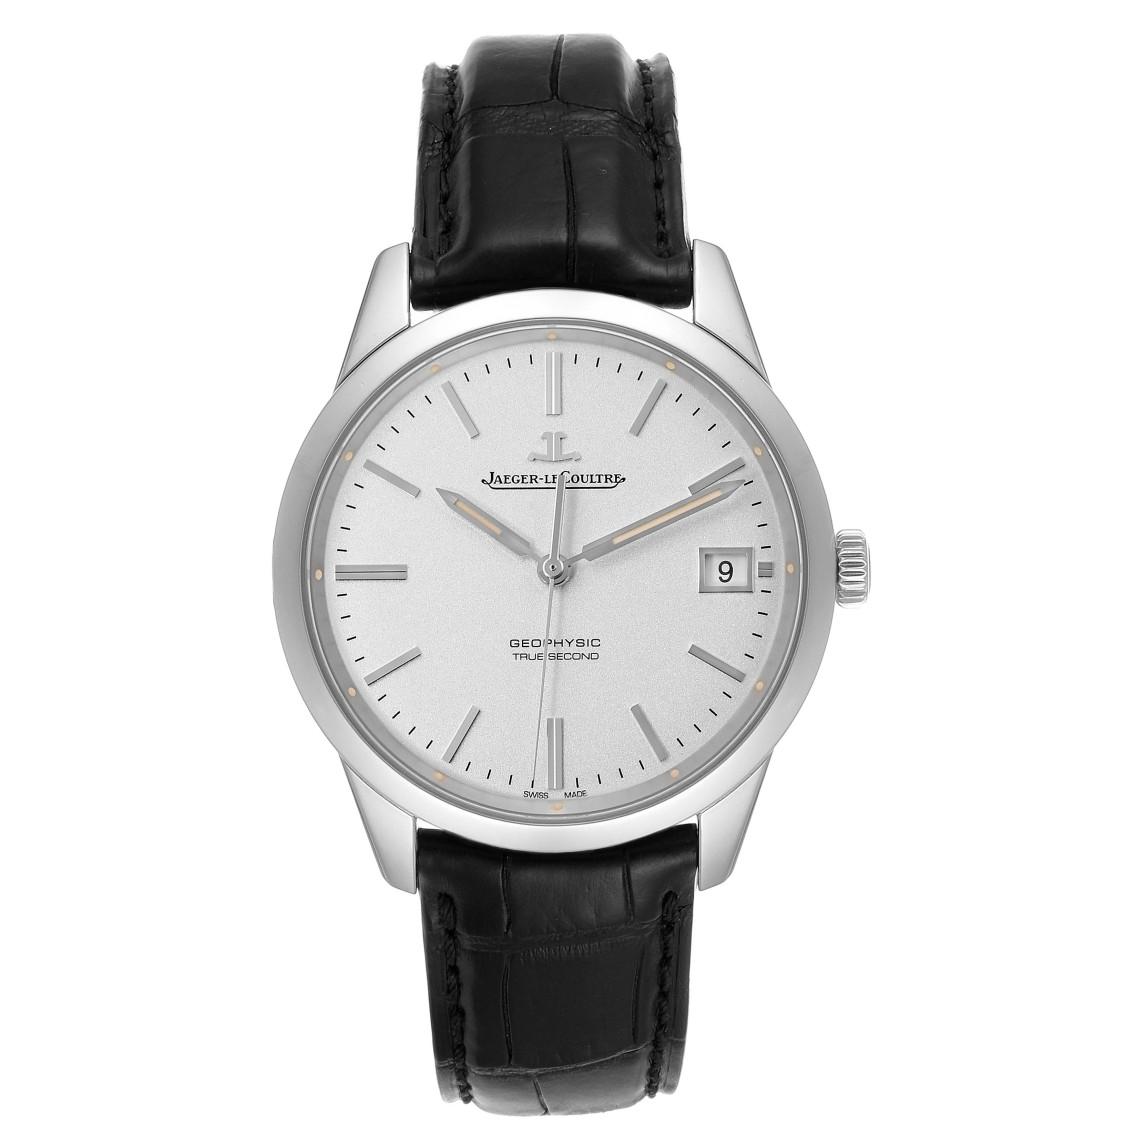 Jaeger-lecoultre Master Ultra Thin Mens Watch 501.8.t0.s Q8018420 In Not Applicable